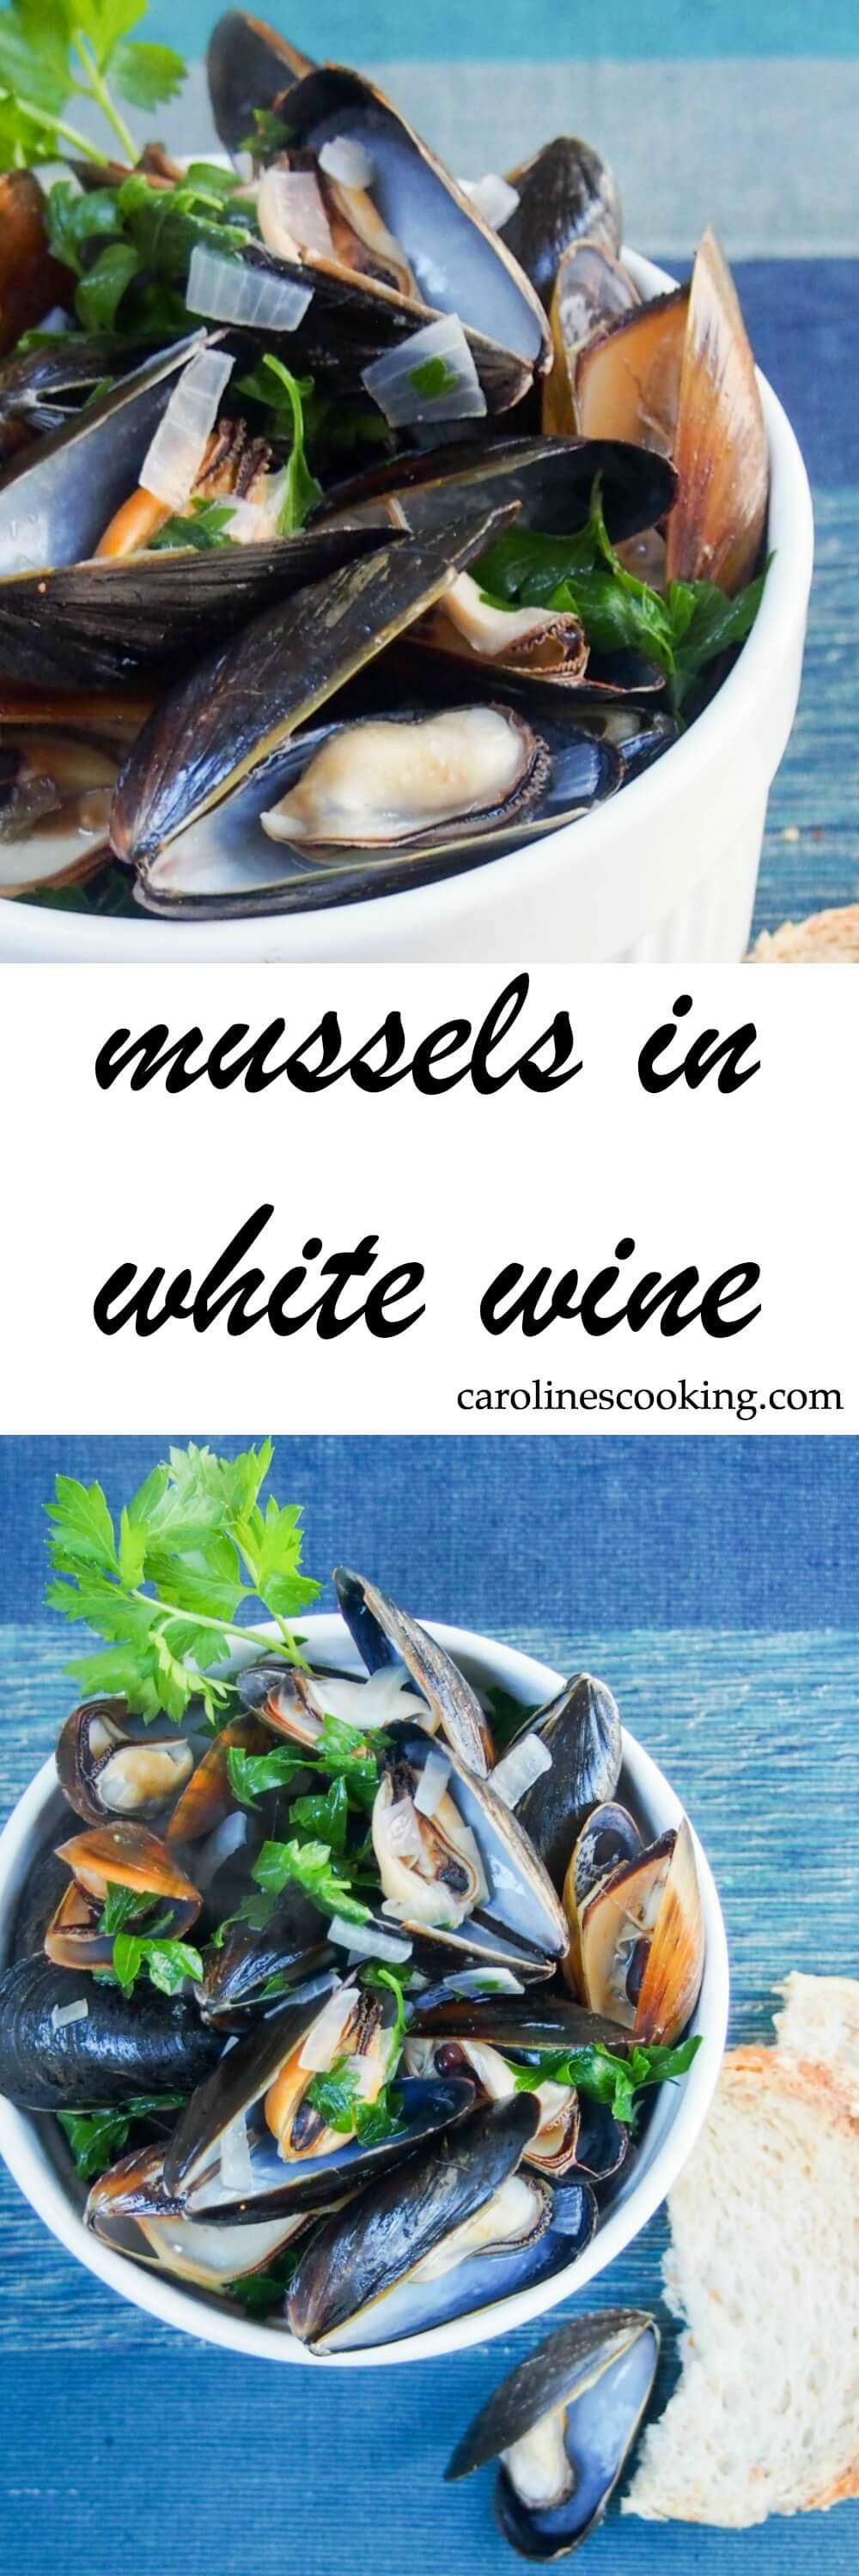 Mussels in white wine is an incredibly simple and easy dish to make, but so delicious. Quick, tasty and one you'll want to make again soon. Easy but feels fancy: perfect for Valentine's day or any time you want something special.